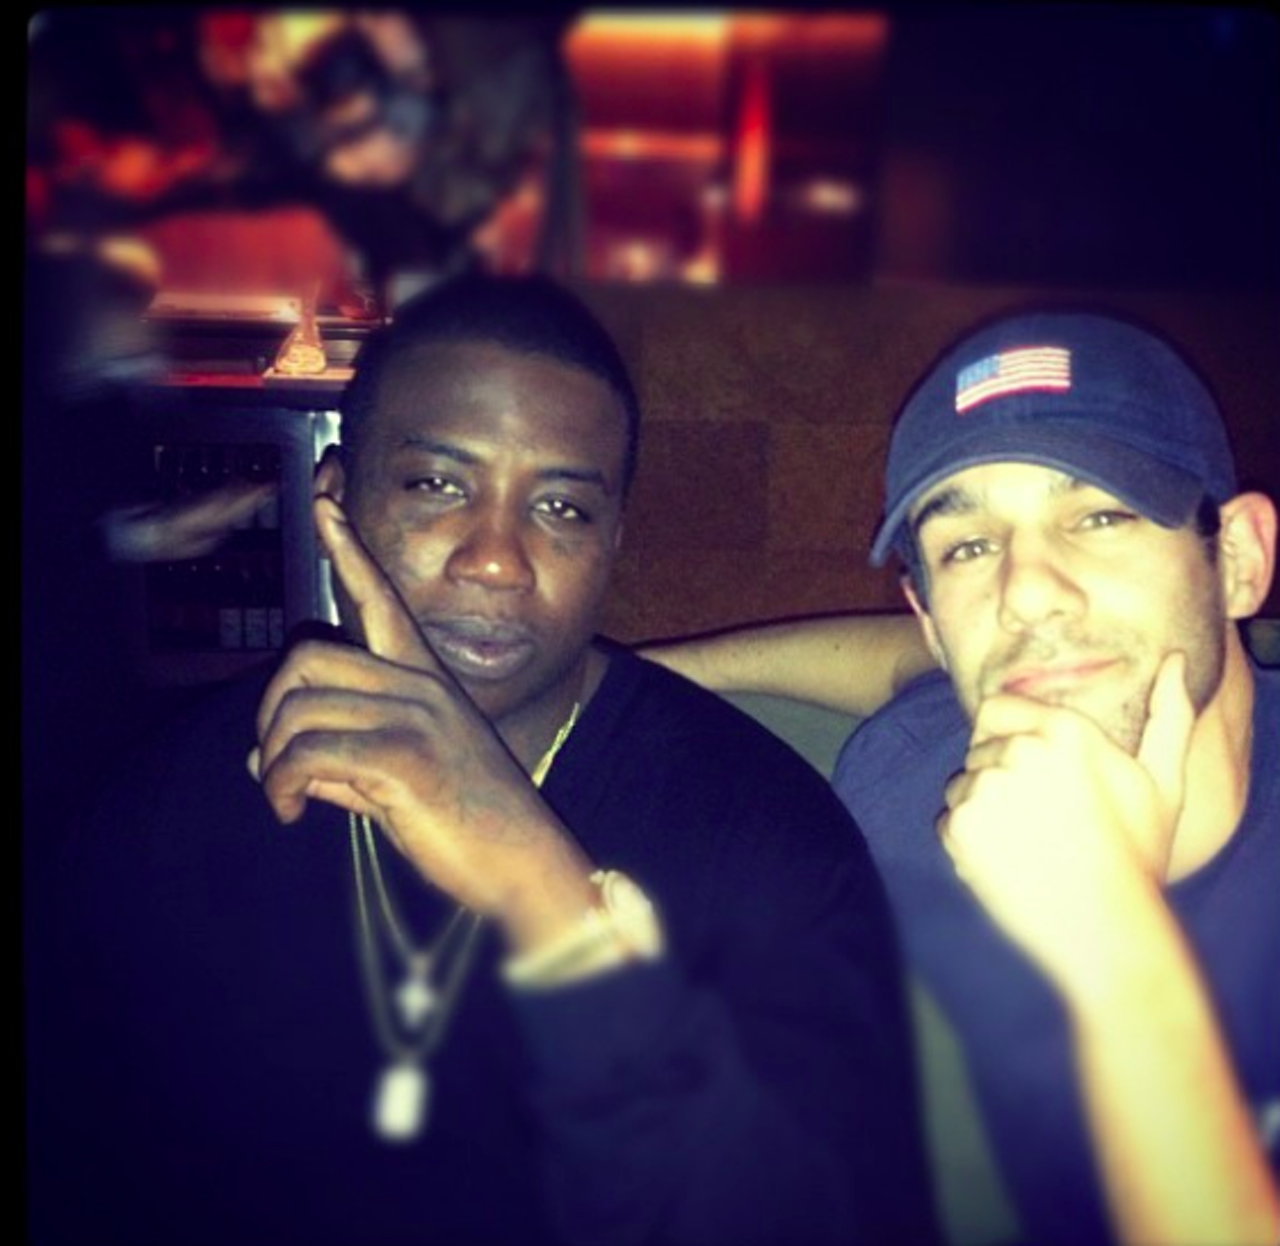 Gucci Mane and Neil Martinez-Belkin at their first meeting in 2012.